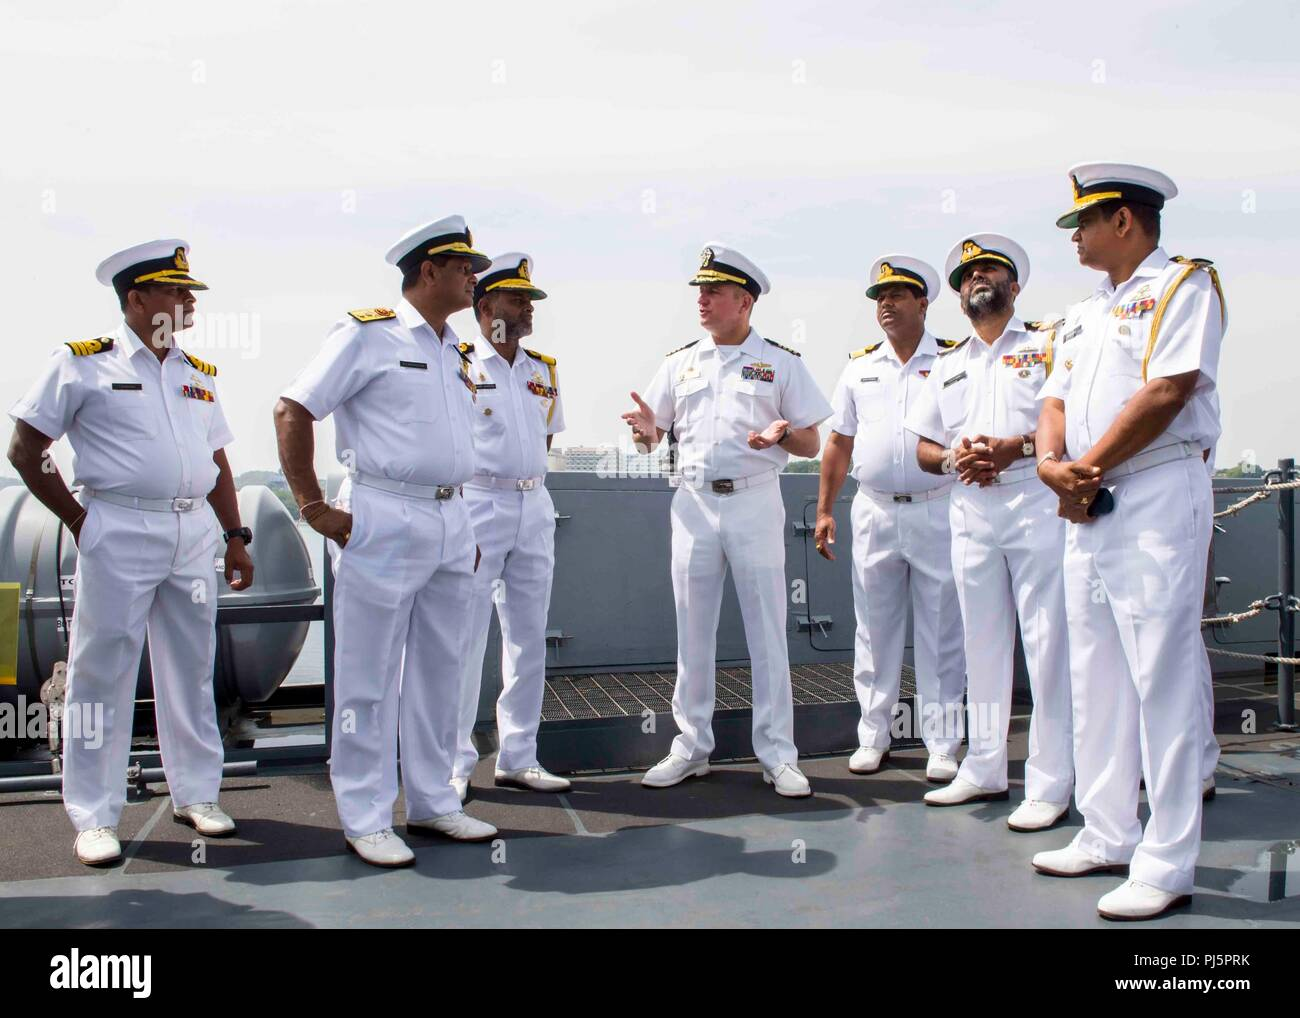 180825-N-PH222-0404 TRINCOMALEE, SRI LANKA (Aug. 25, 2018) Capt. Dennis Jacko, commanding officer of San Antonio-class amphibious transport dock USS Anchorage (LPD 23), from Sayreville, N.J., gives a tour to distinguished visitors of the Sri Lanka navy during a regularly scheduled deployment of the Essex Amphibious Ready Group (ARG) and 13th Marine Expeditionary Unit (MEU). Anchorage and the embarked Marines of the 13th MEU are conducting a theater security cooperation exercise with the Sri Lankan navy and marines. Part of a growing U.S.-Sri Lanka naval partnership, the exercise is also an opp - Stock Image